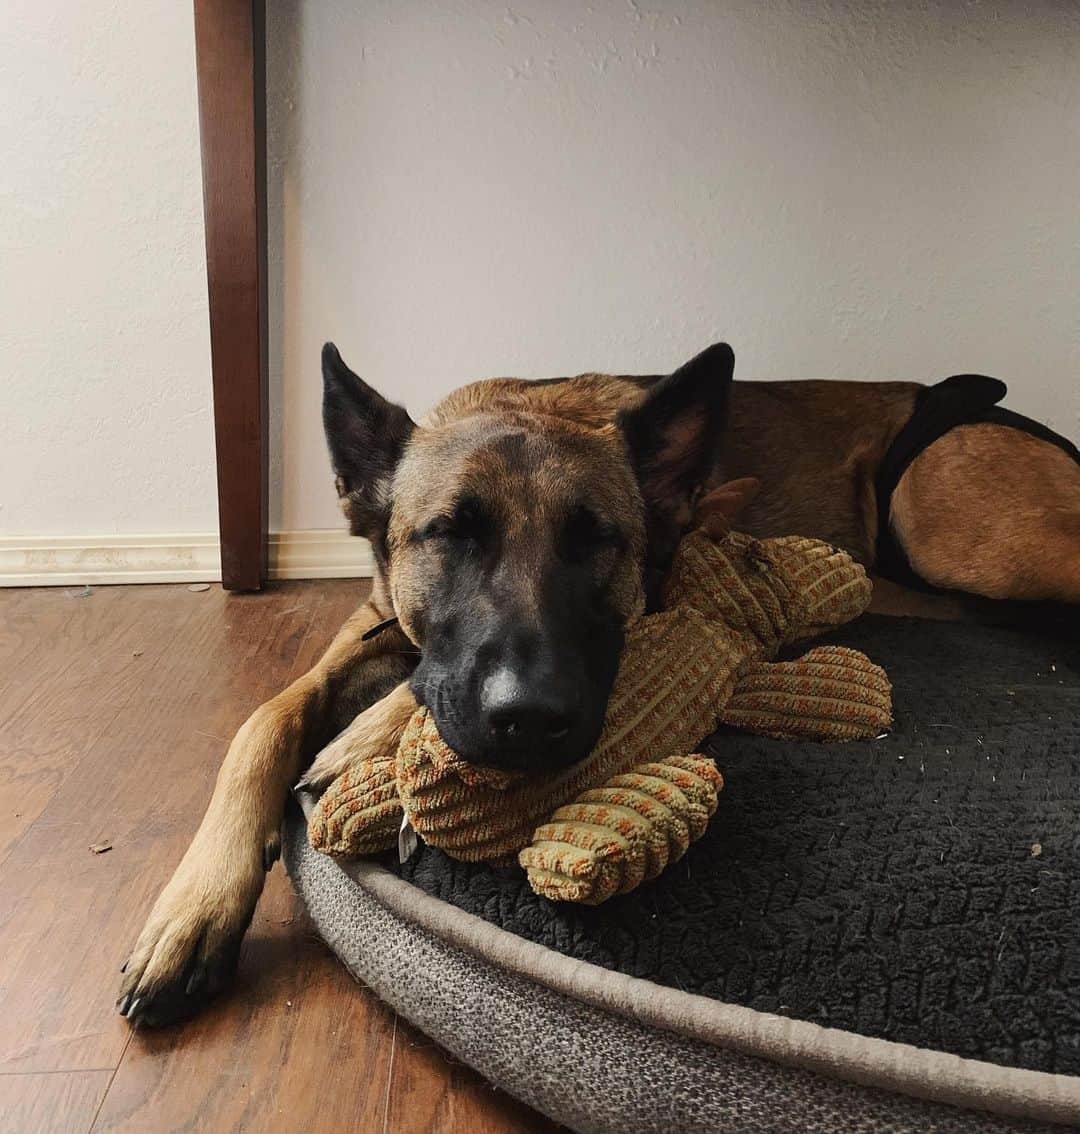 The Belgian Malinois German Shepherd mix sleeping with its teddy